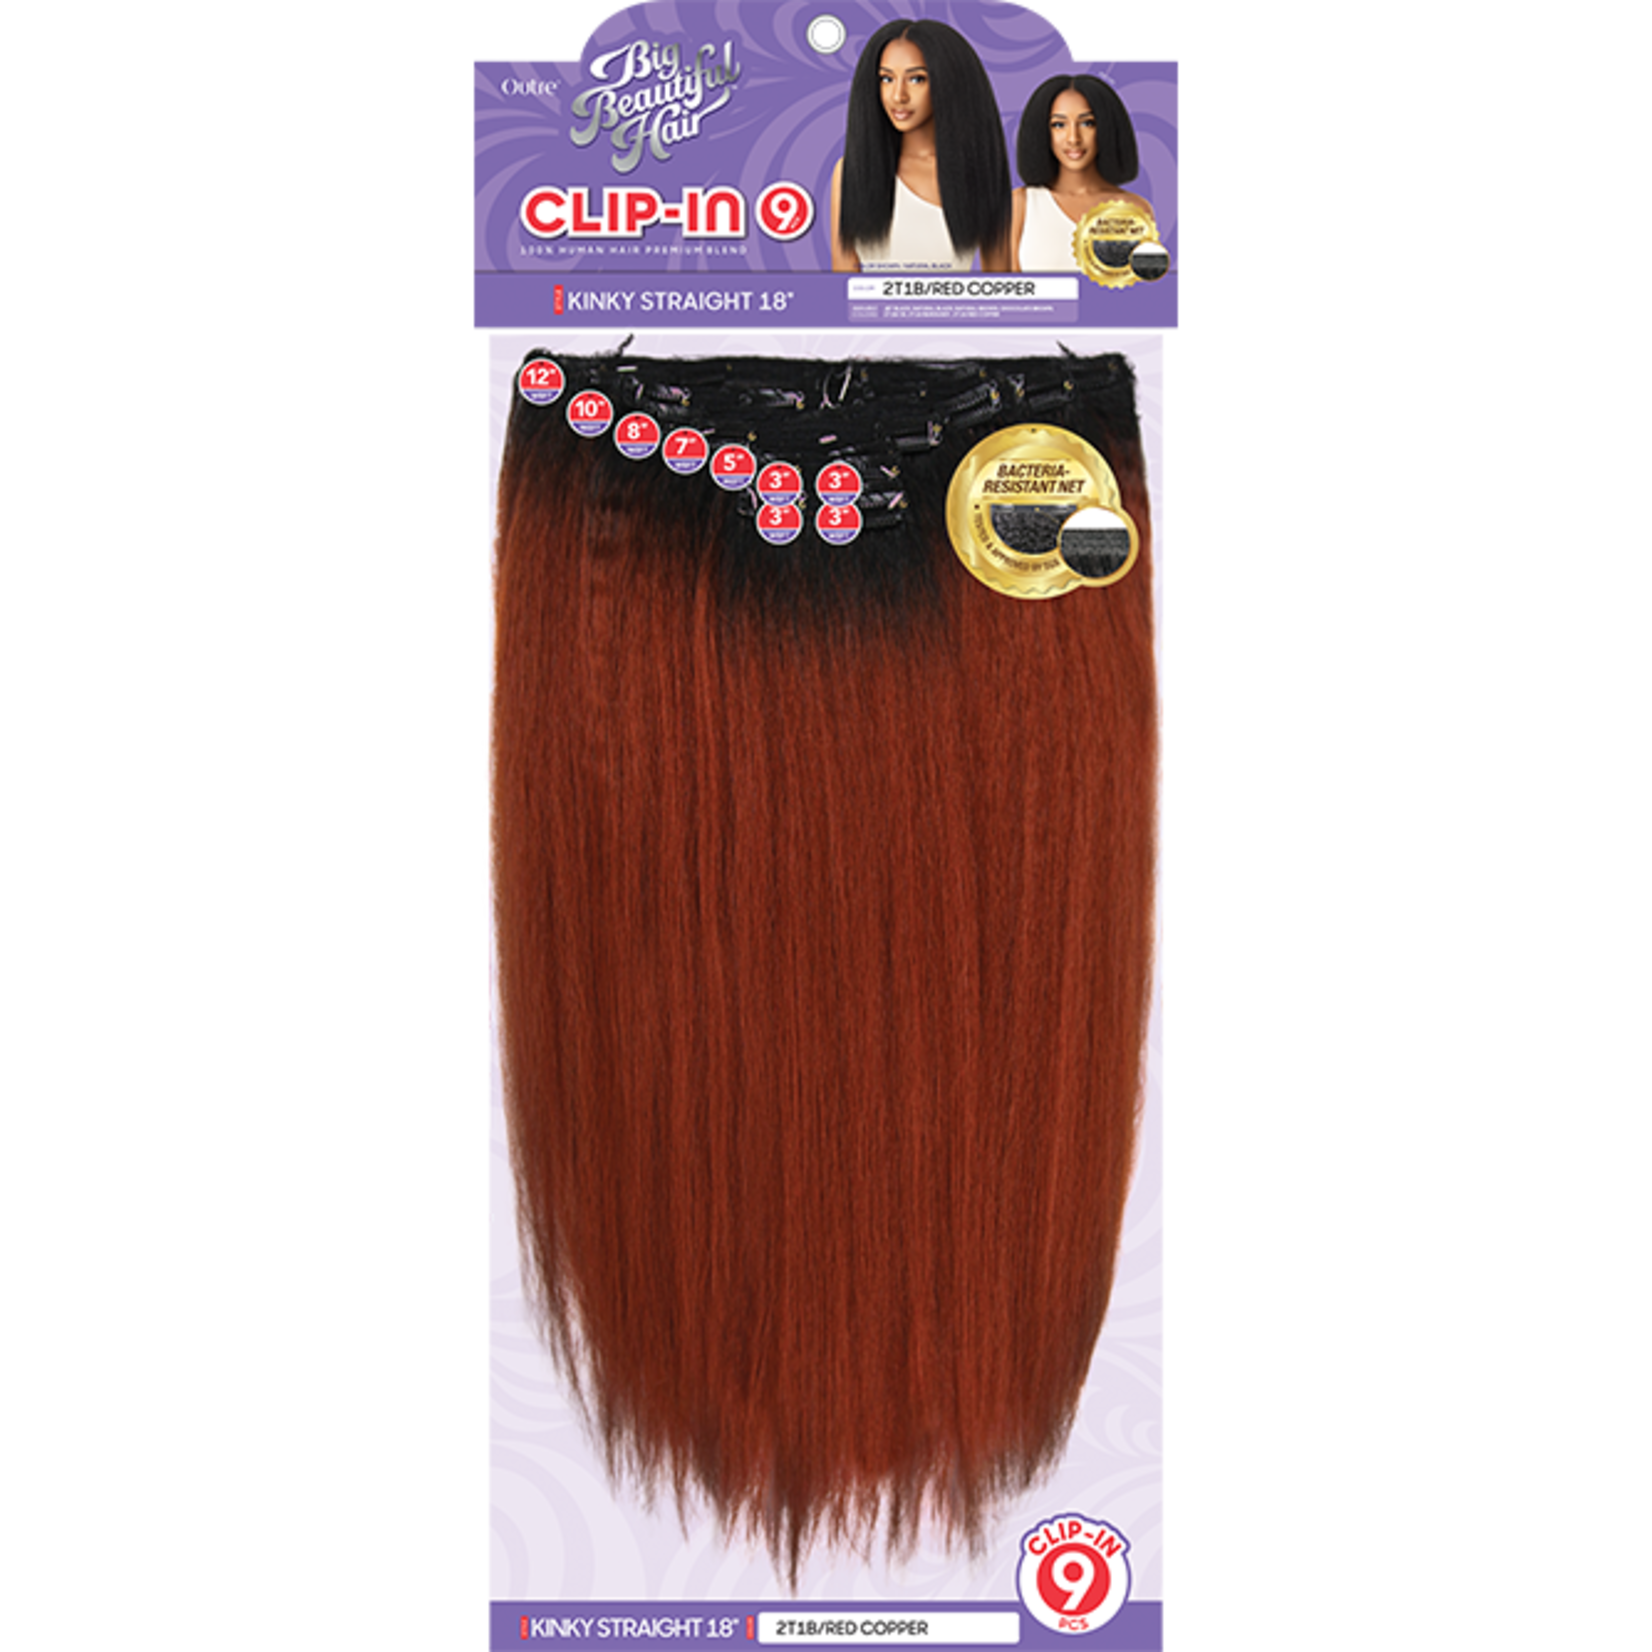 OUTRE Big Beautiful Hair Clip in 9PCS  Kinky Straight 18″